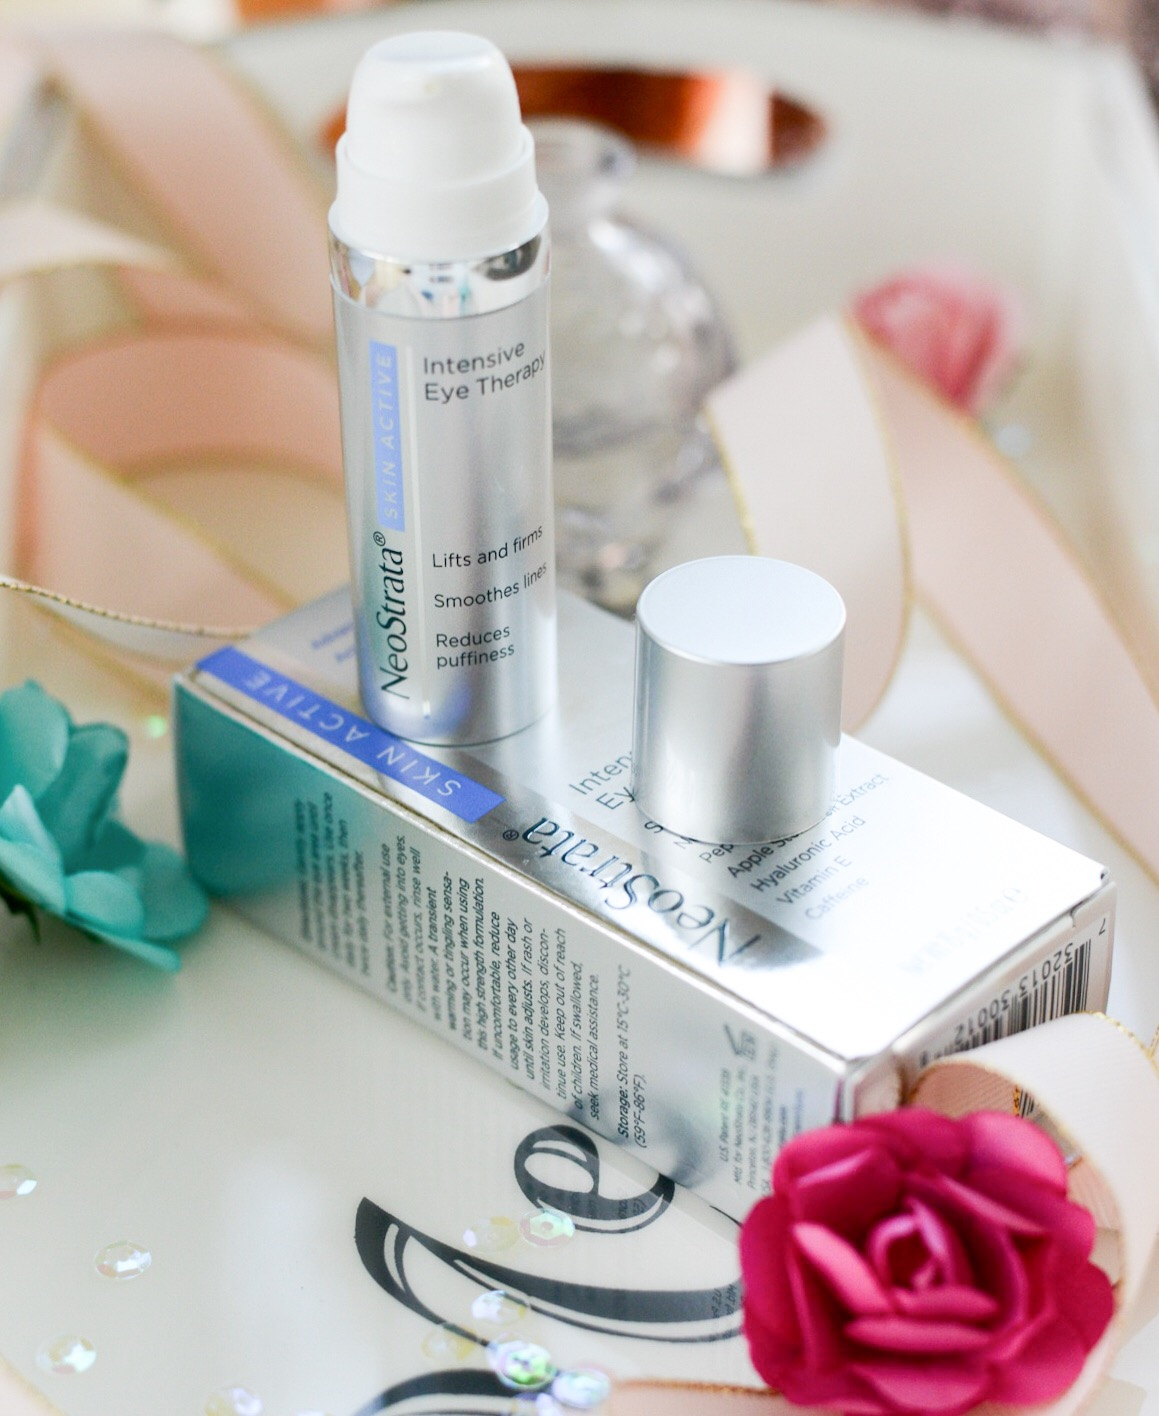 Splurge-worthy Intensive Eye Therapy - NeoStrata Skin Active Intensive